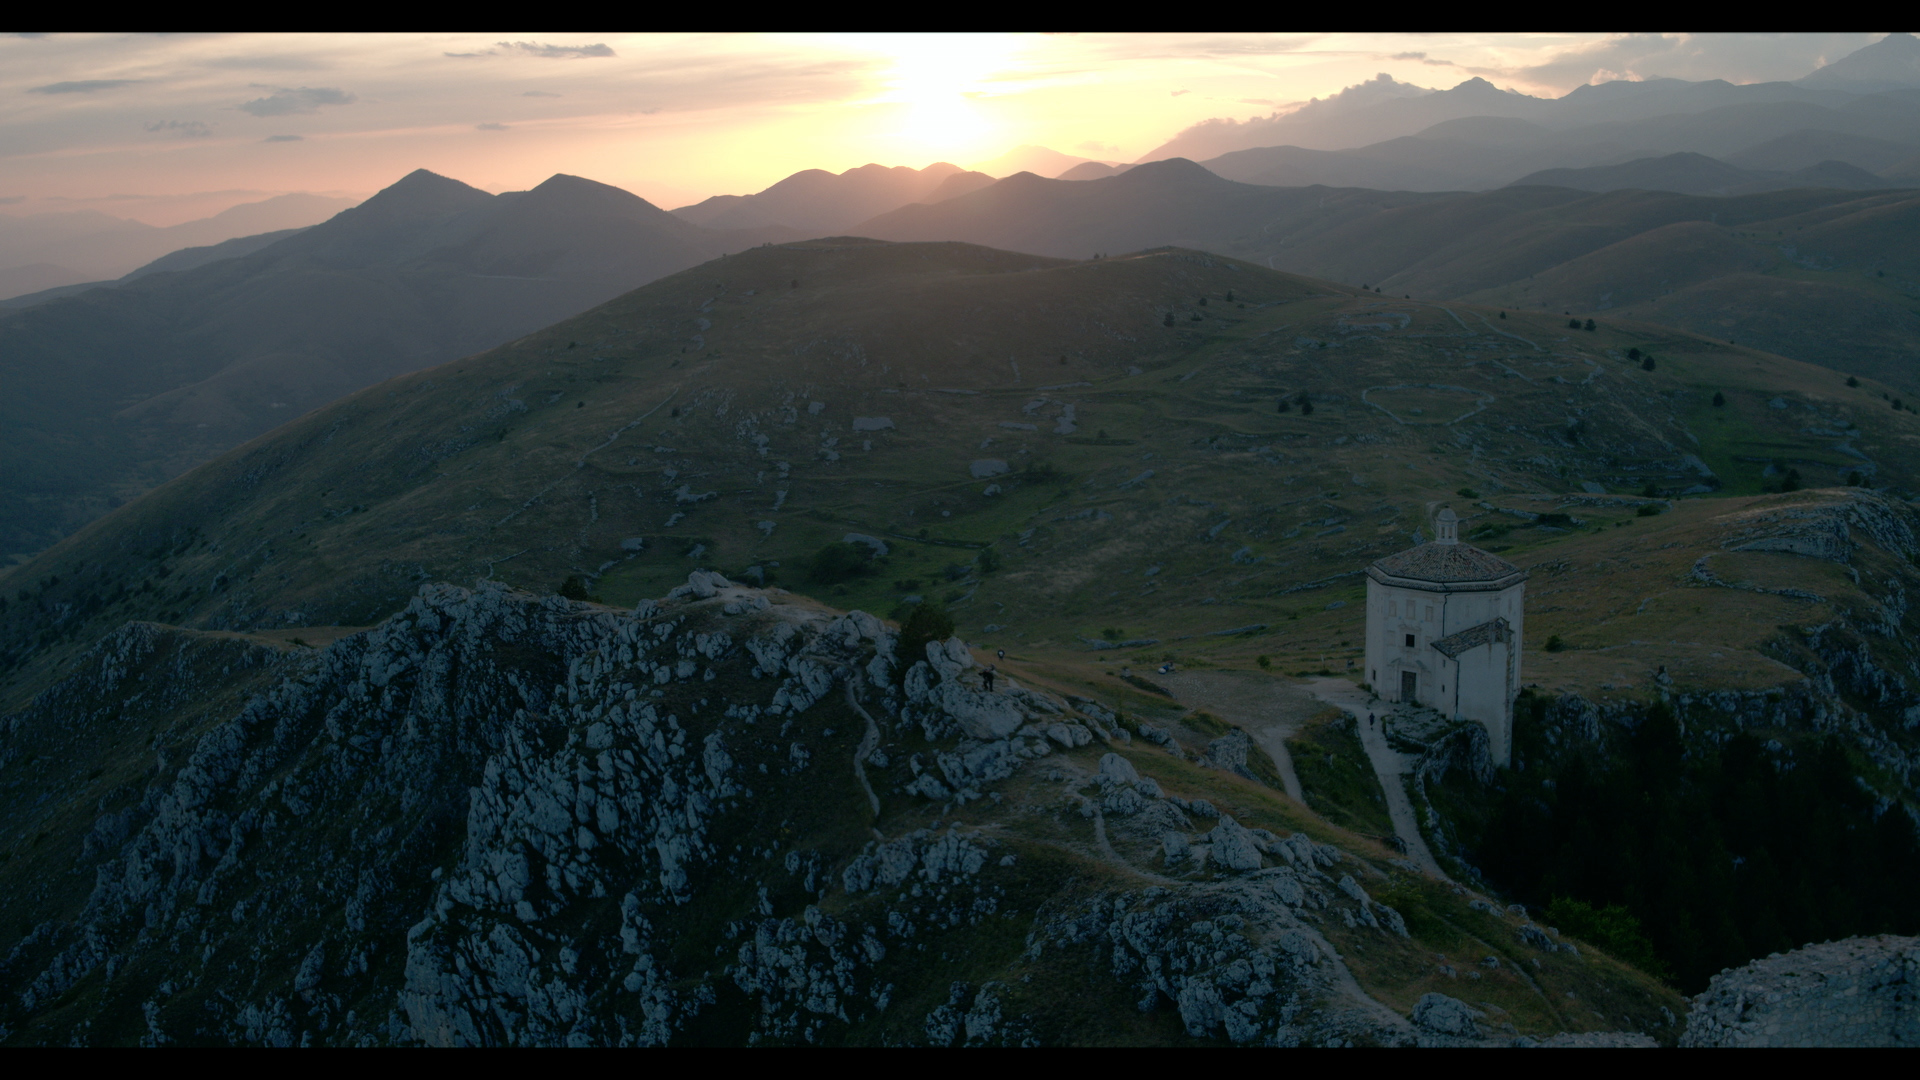 On location for OVERLAND in the mountains where many ancient armies passed on their way to invade Rome